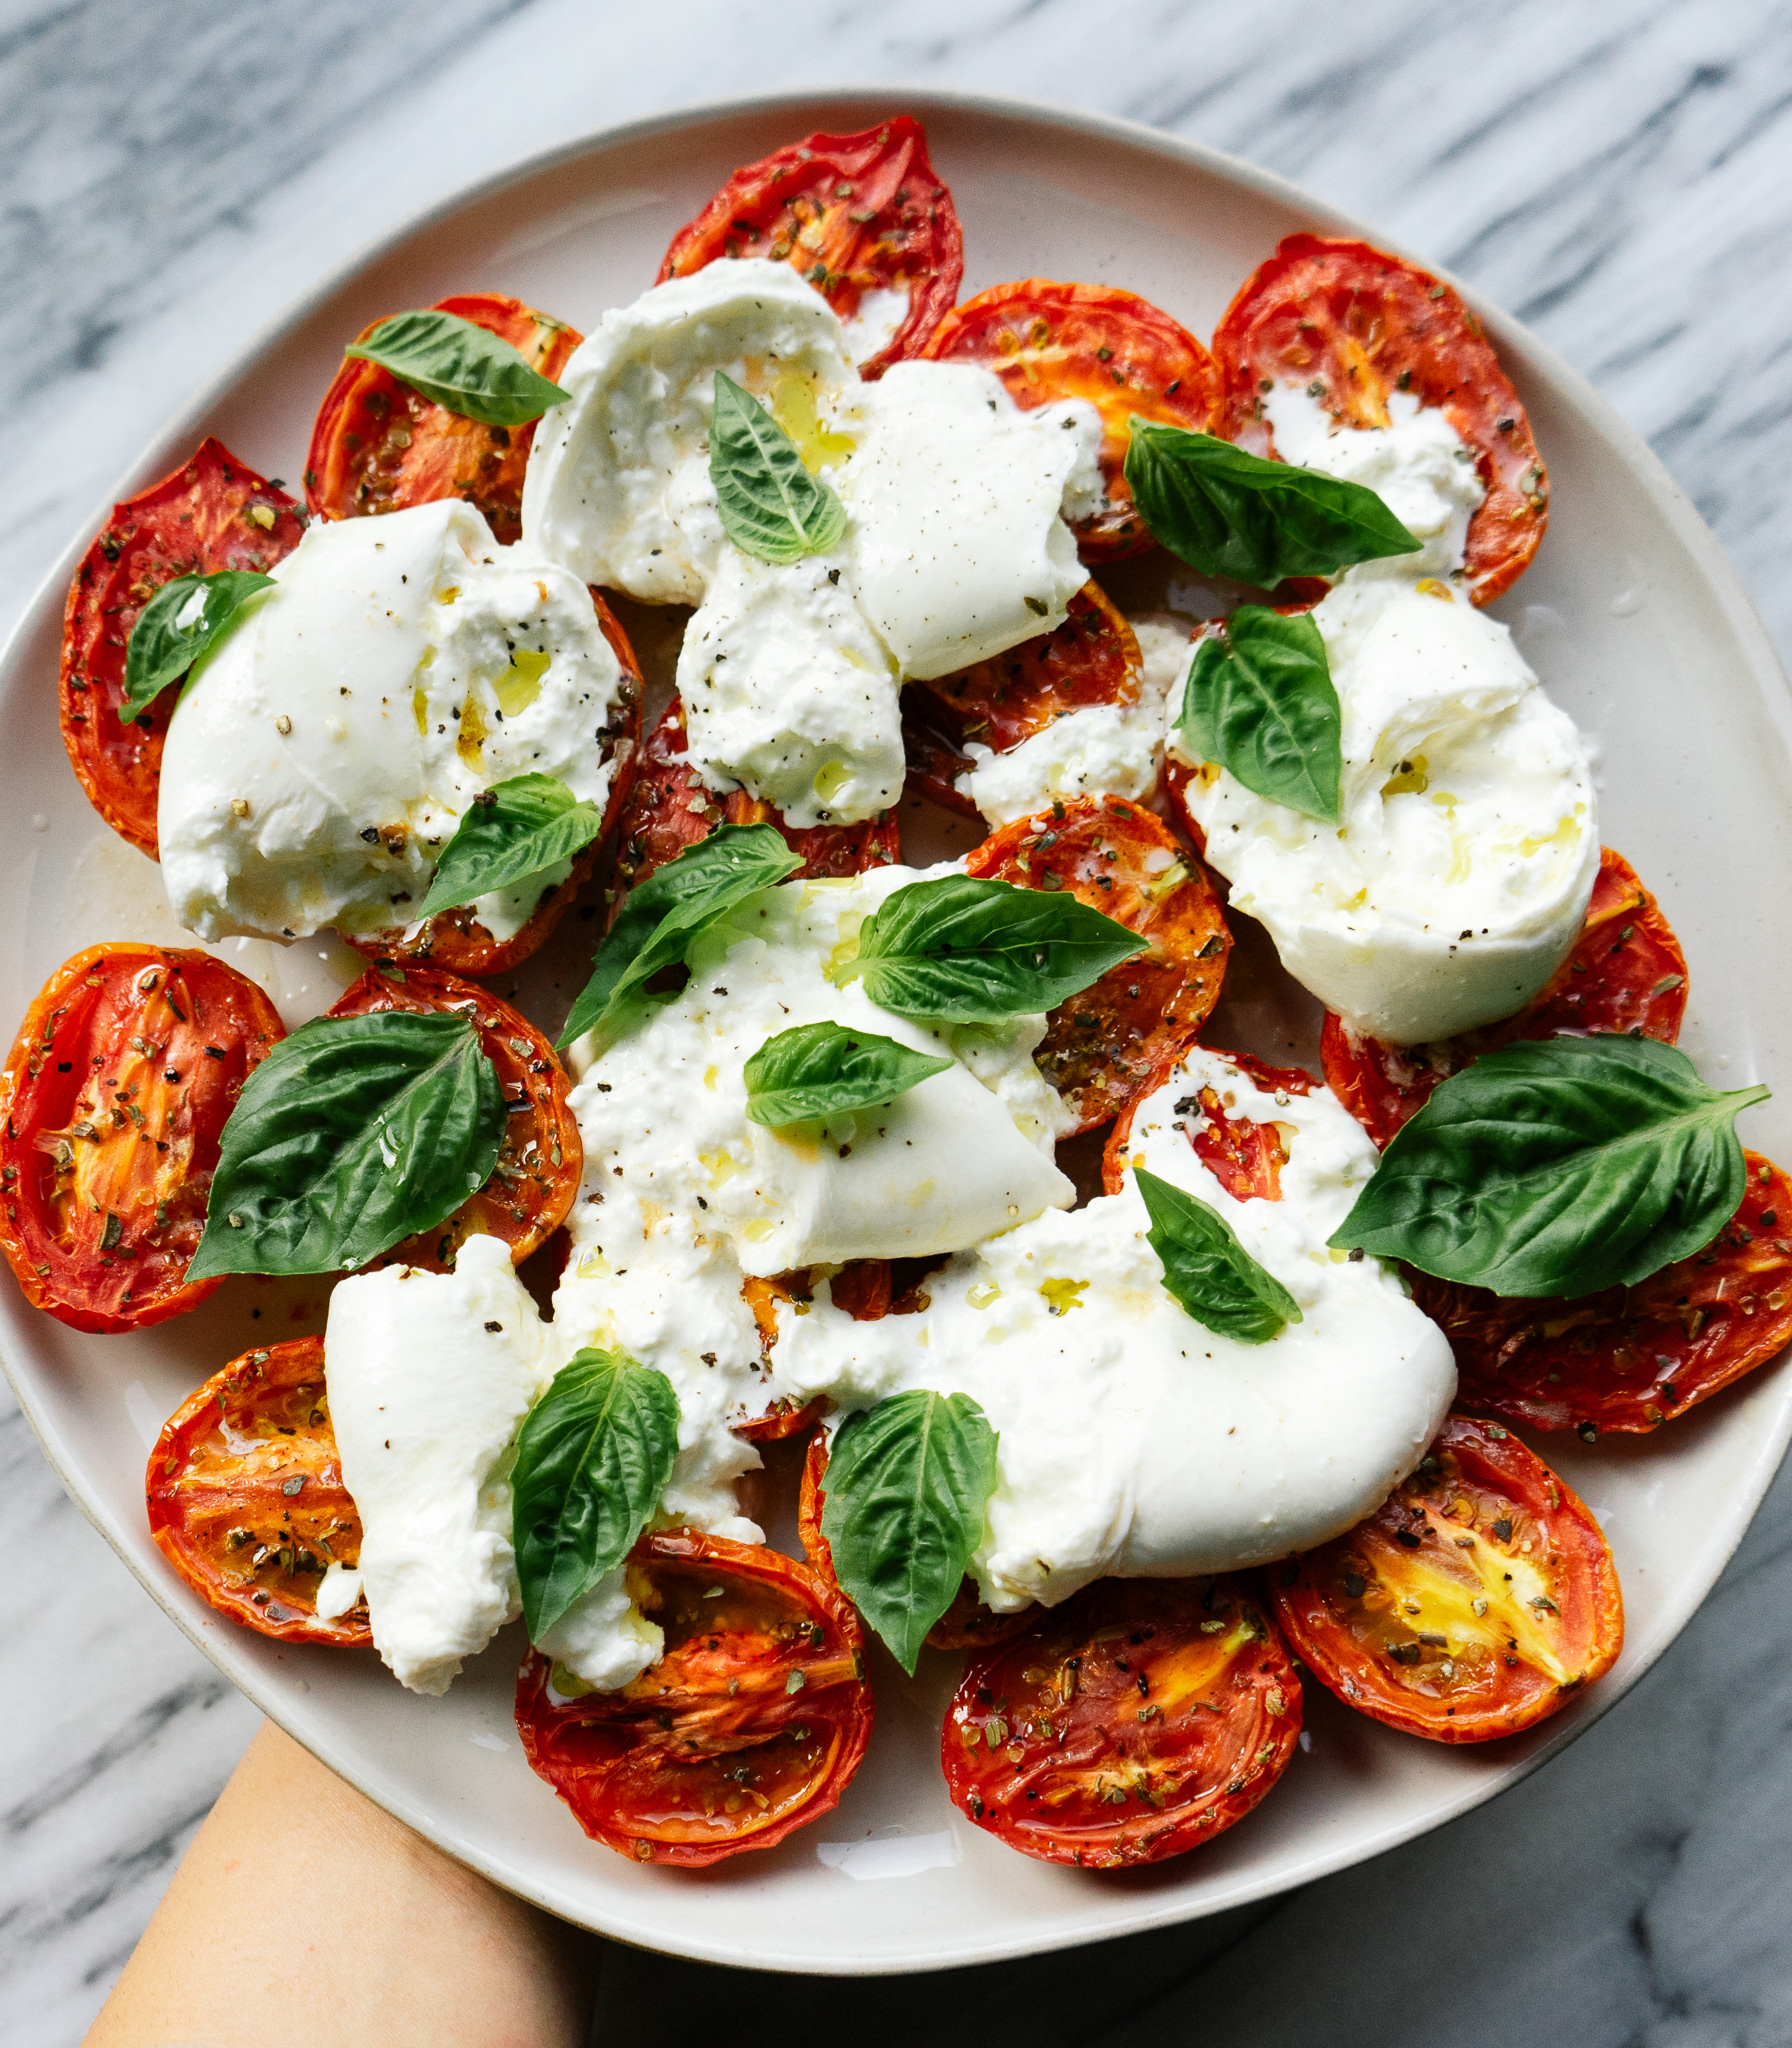 Looking for the perfect summer salad or side dish? Make this simple, healthy, and delicious slow roasted tomato and burrata salad.